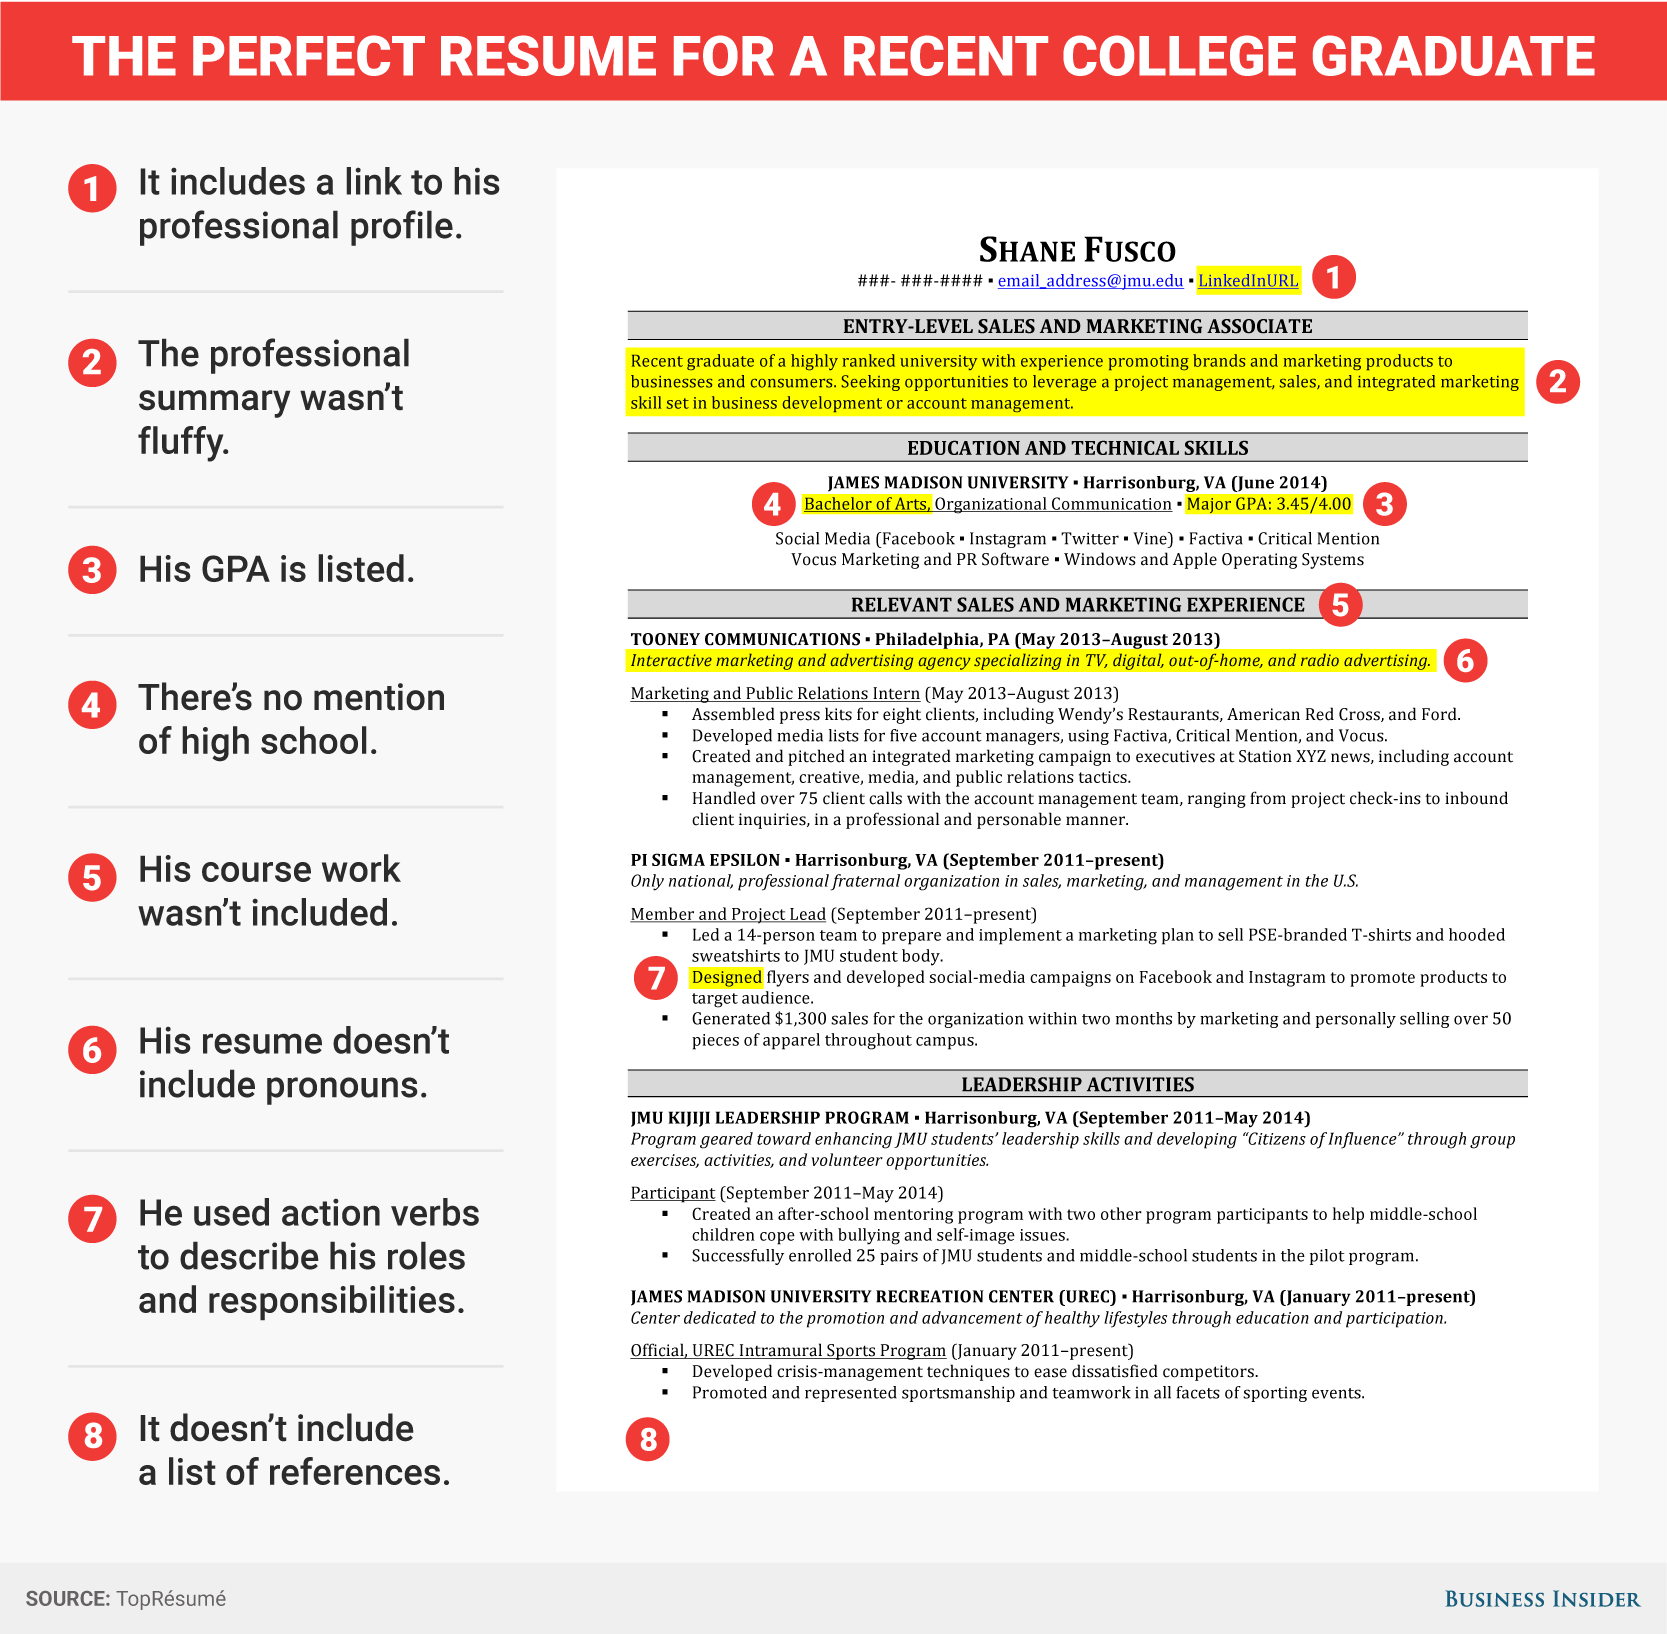 resume objective examples for recent college graduate